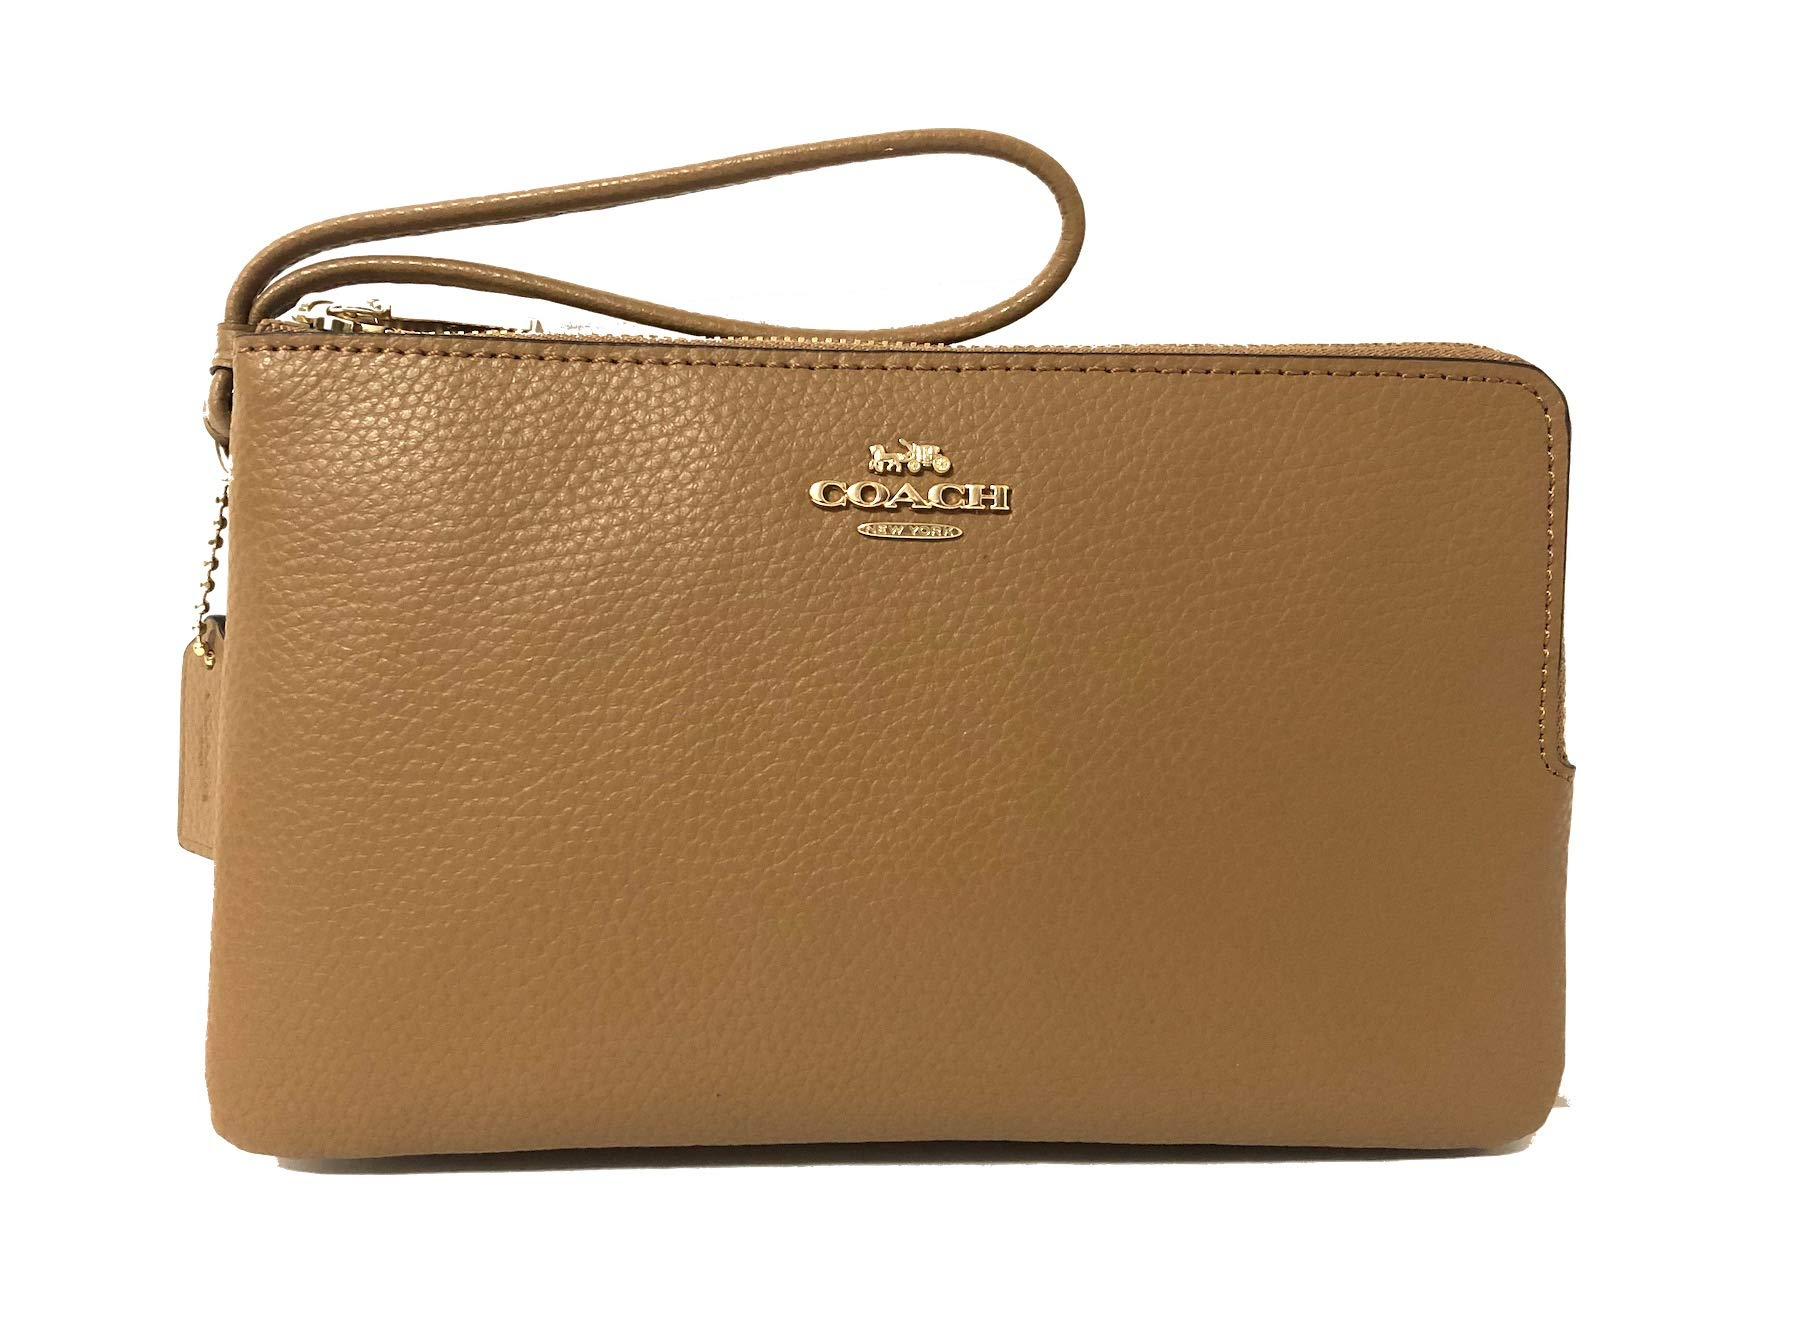 Coach F87587 Double Zip Pebble Leather Wristlet Wallet (Light Saddle) by Coach